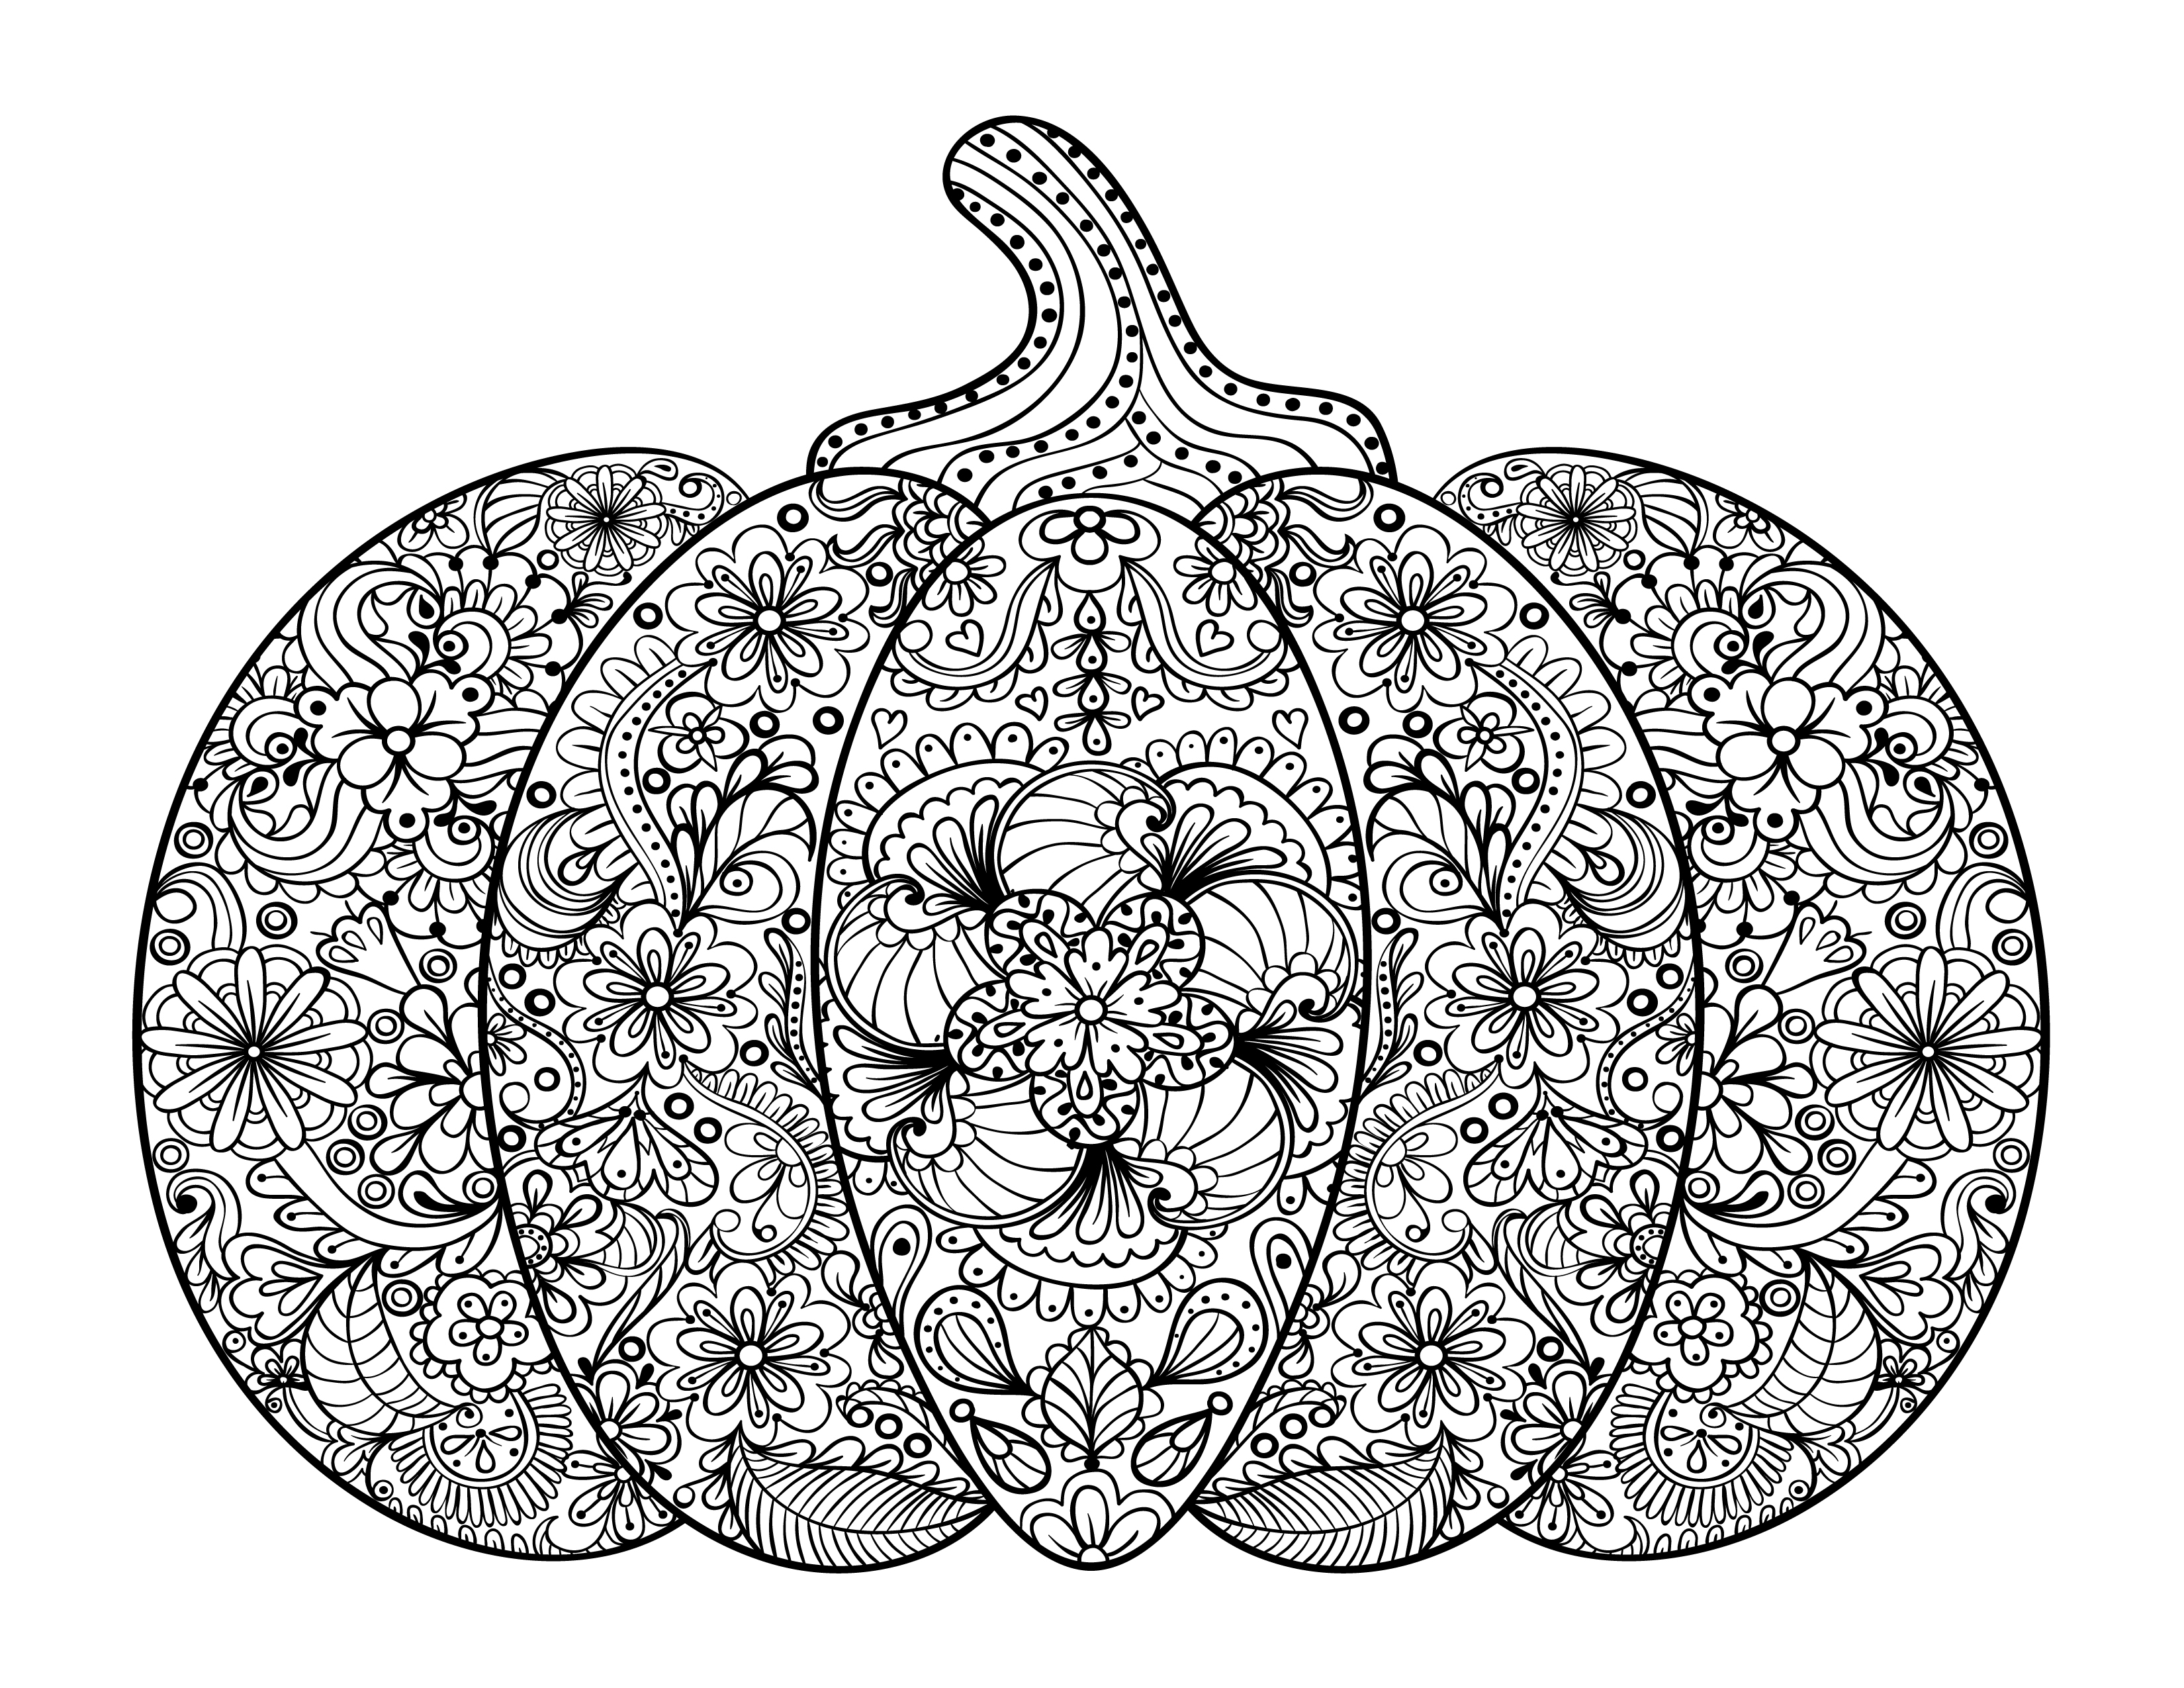 pumpkin coloring pages free scary pumpkin coloring page free printable coloring pages pumpkin free pages coloring